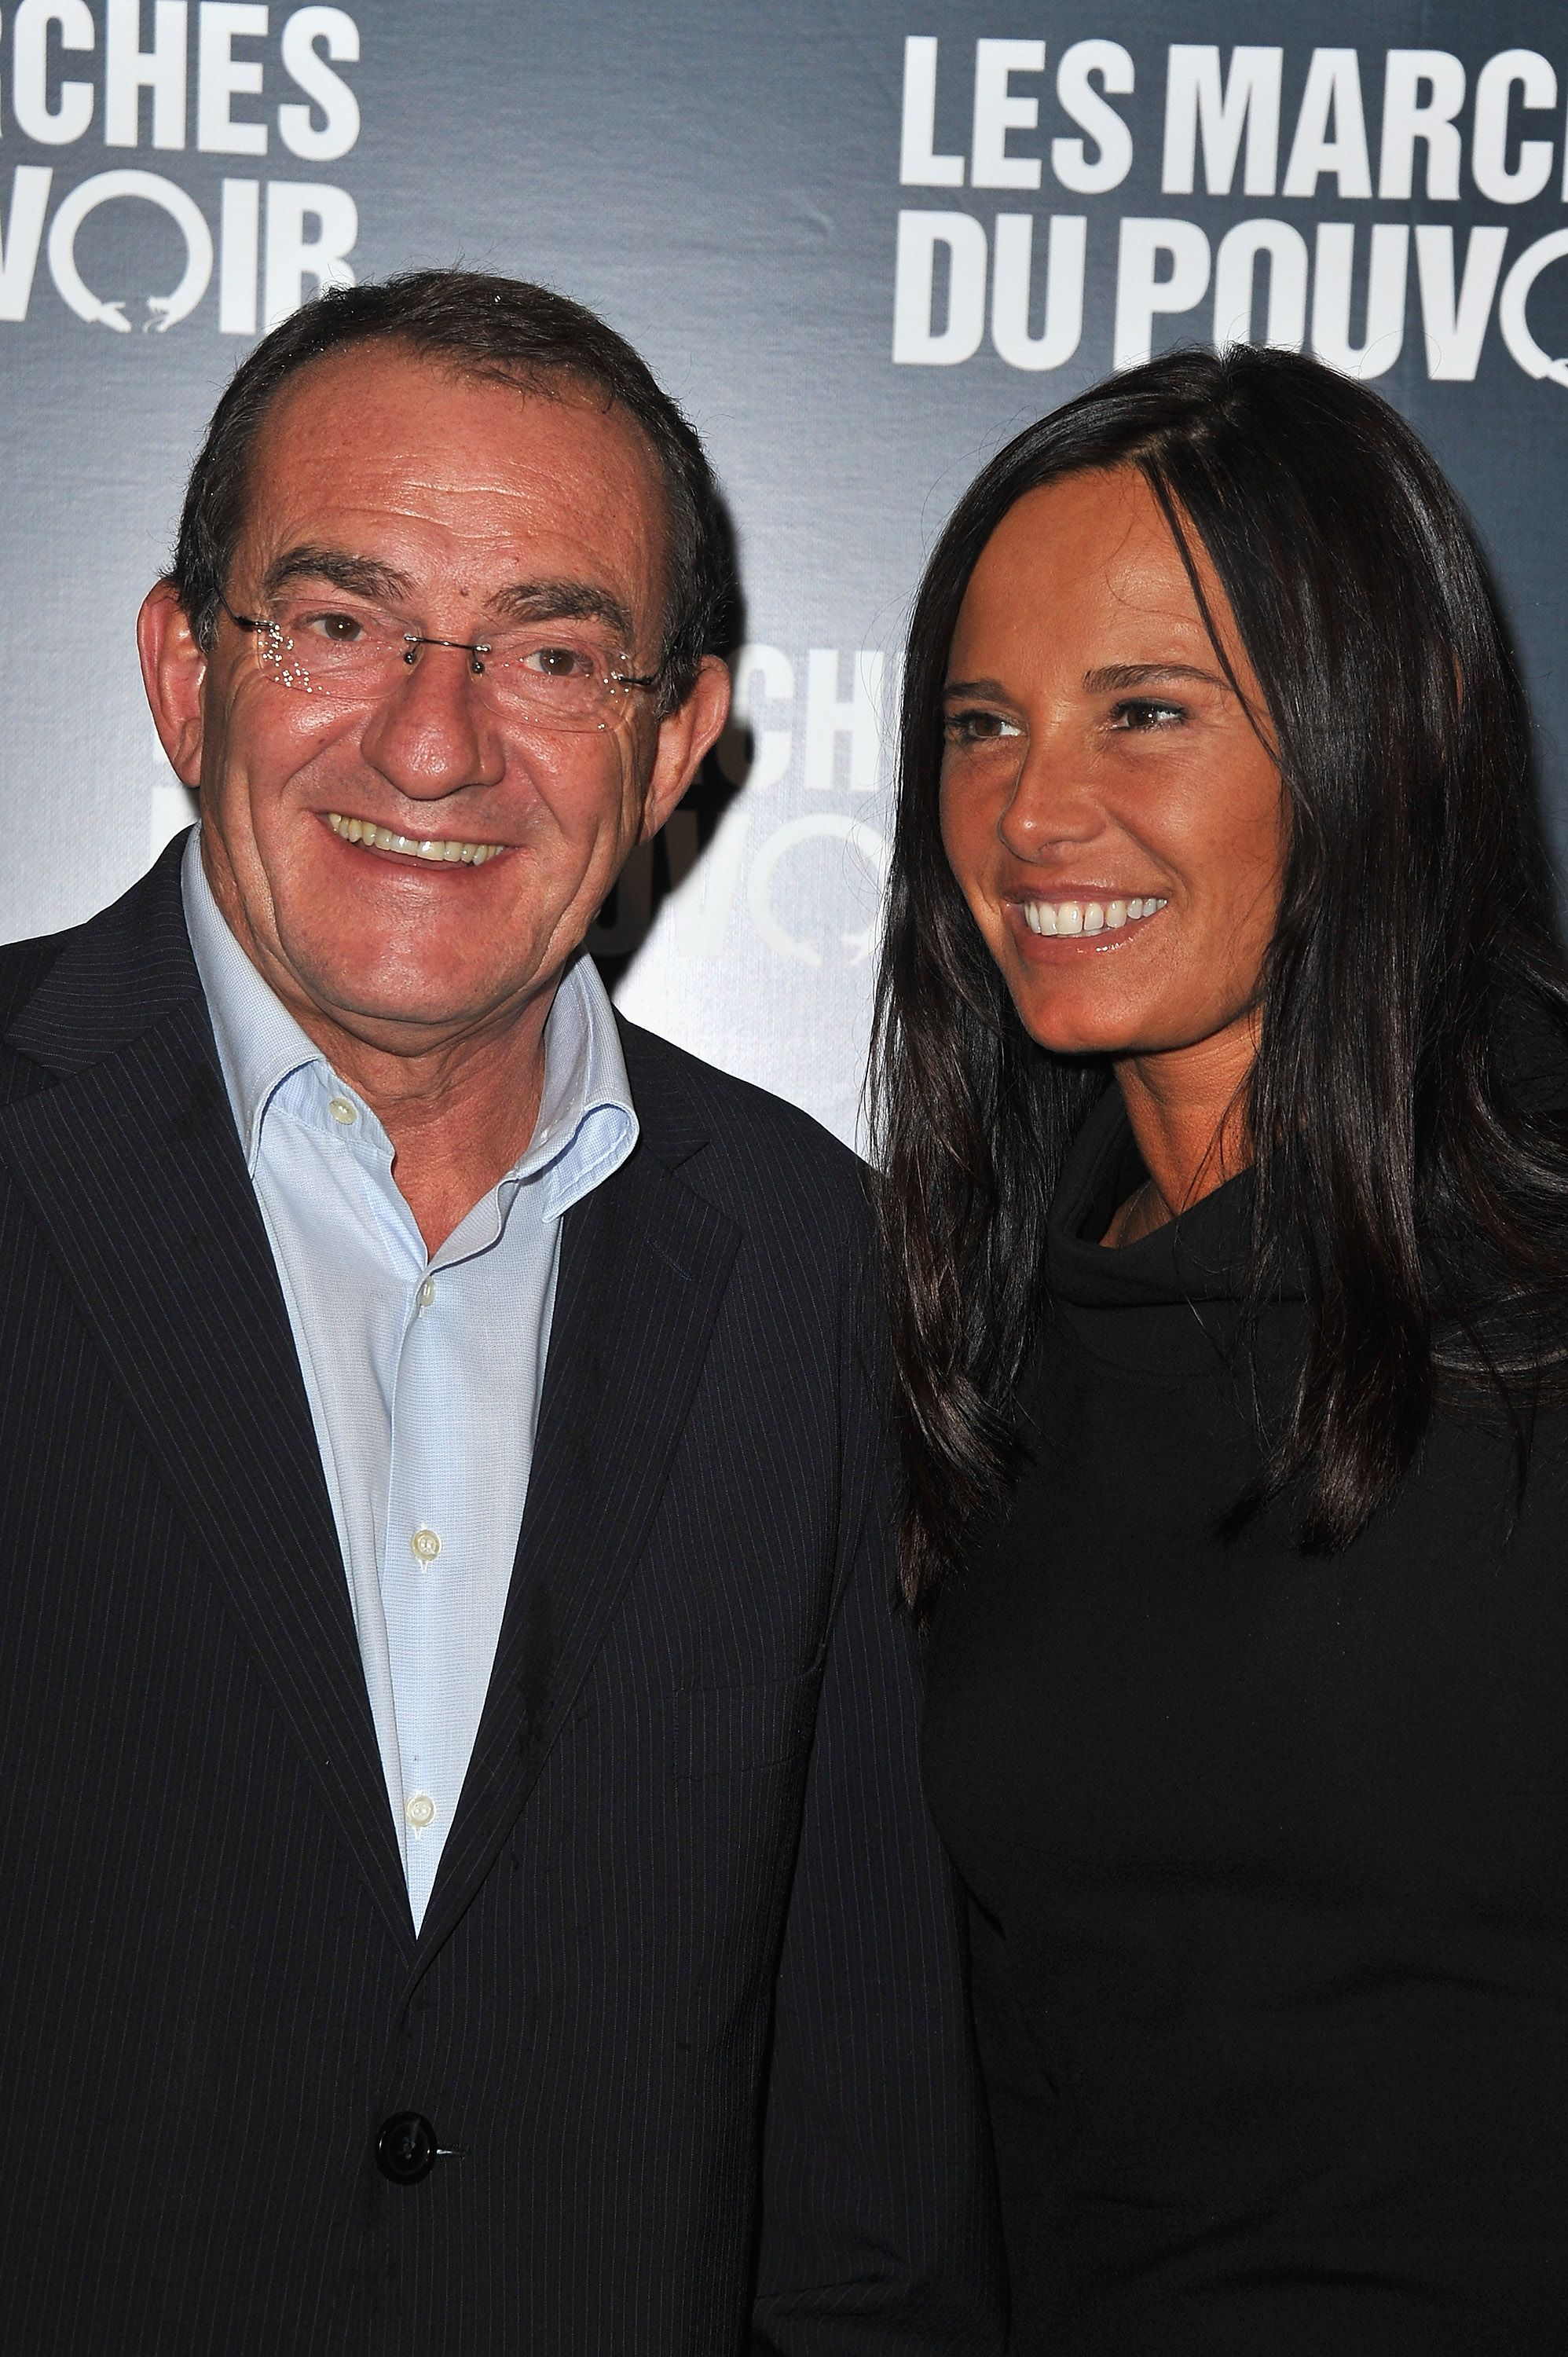 Jean-Pierre Pernaut et sa femme Nathalie Marquay | Photo : Getty Images